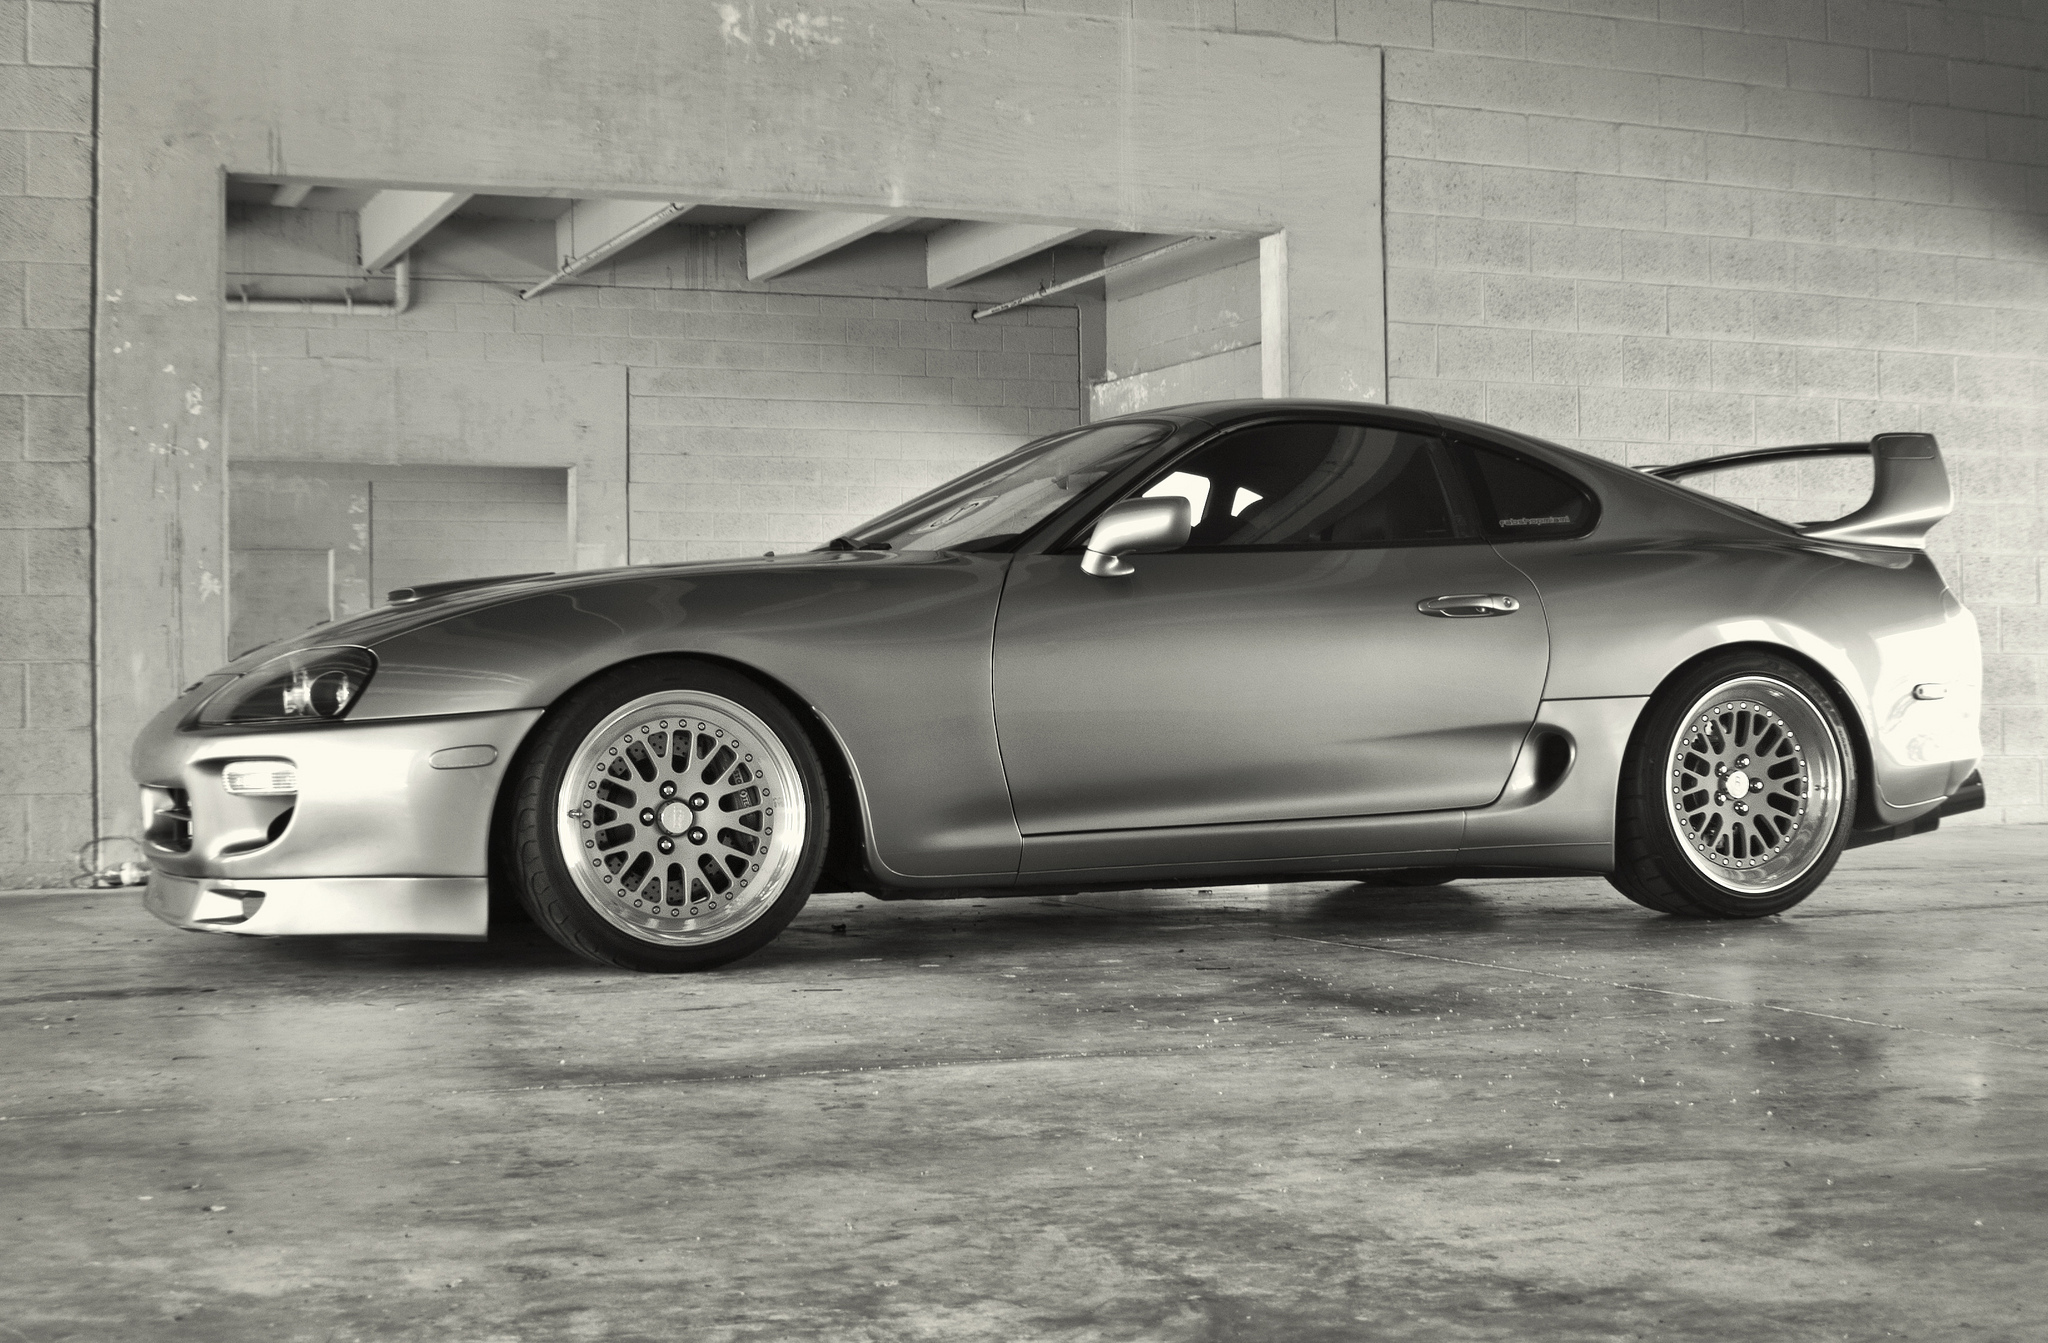 Supra Iphone Wallpaper Toyota Supra Full Hd Wallpaper And Background Image